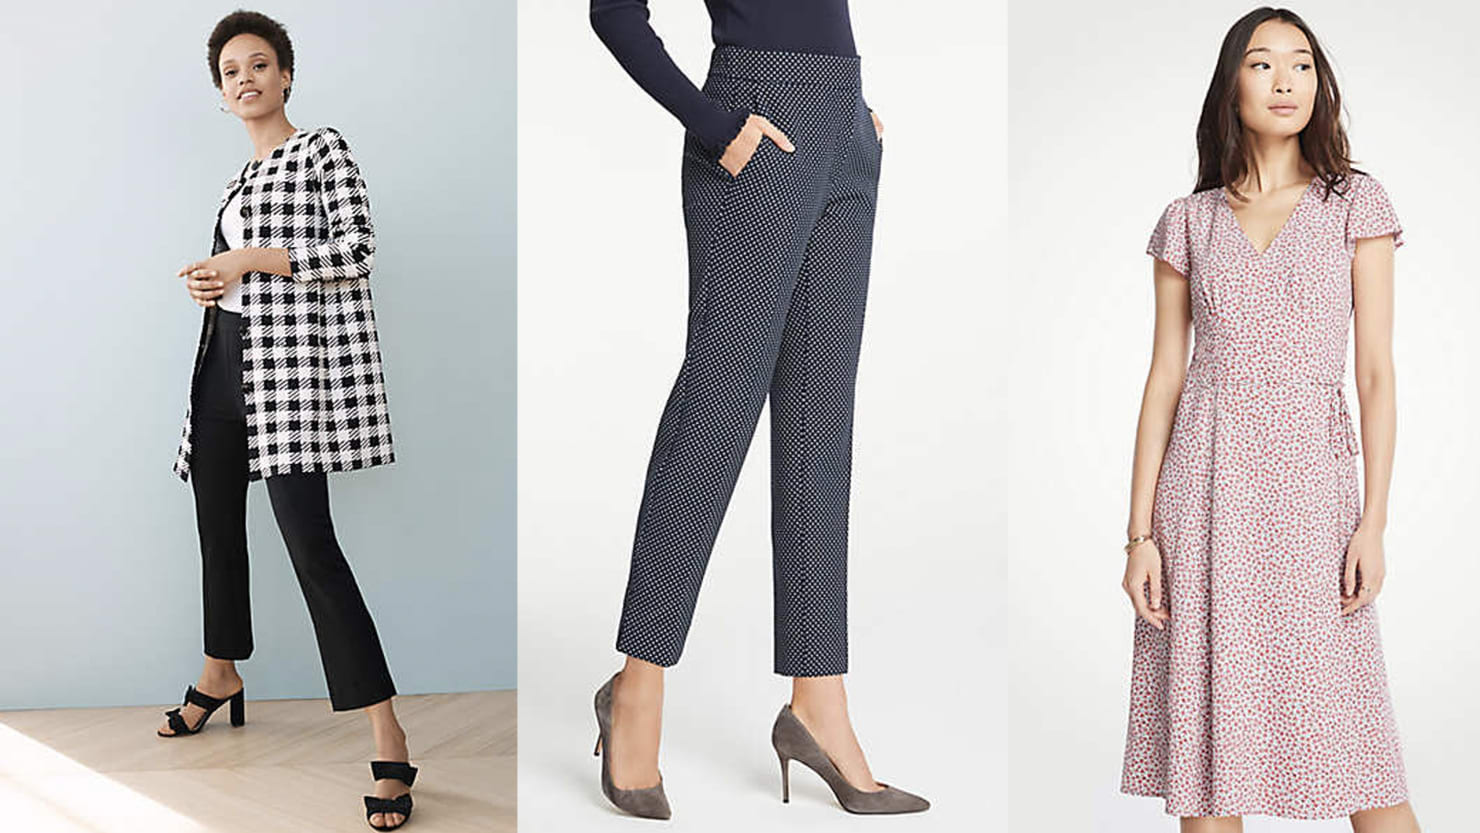 The Ultimate Spring Style Event At Ann Taylor Means 50% Off Your Entire Purchase